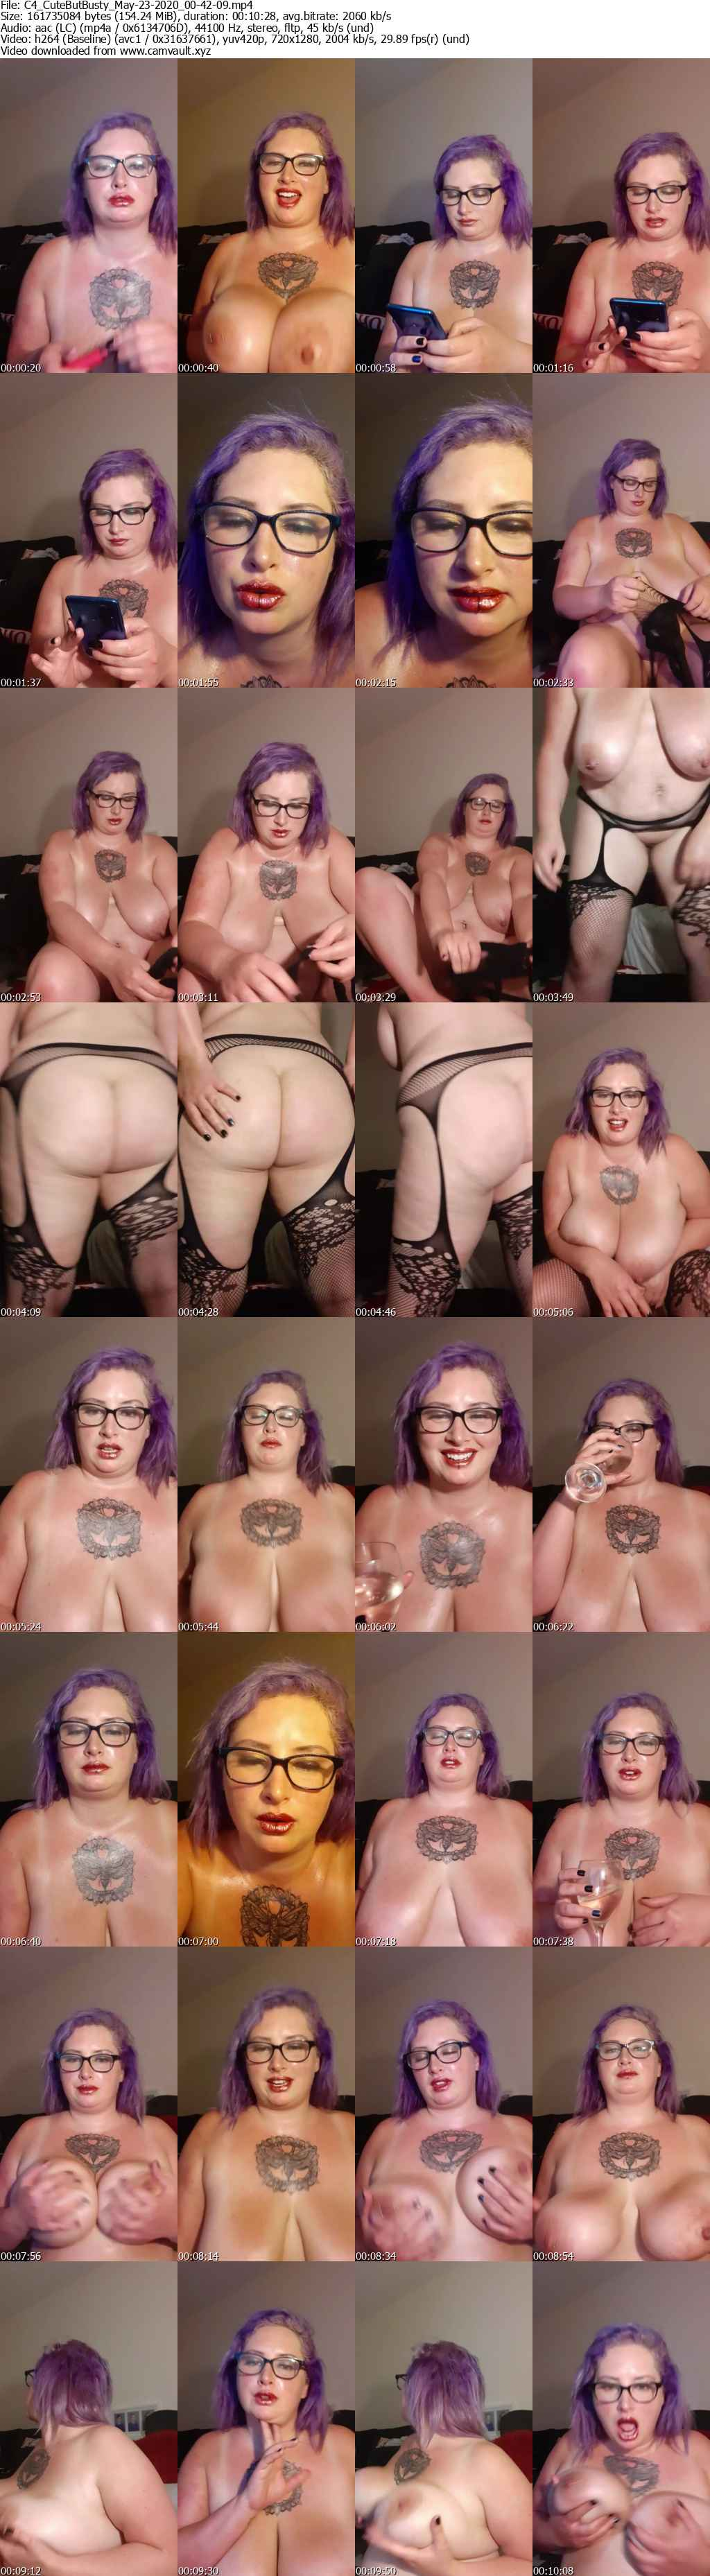 Video preview for model CuteButBusty